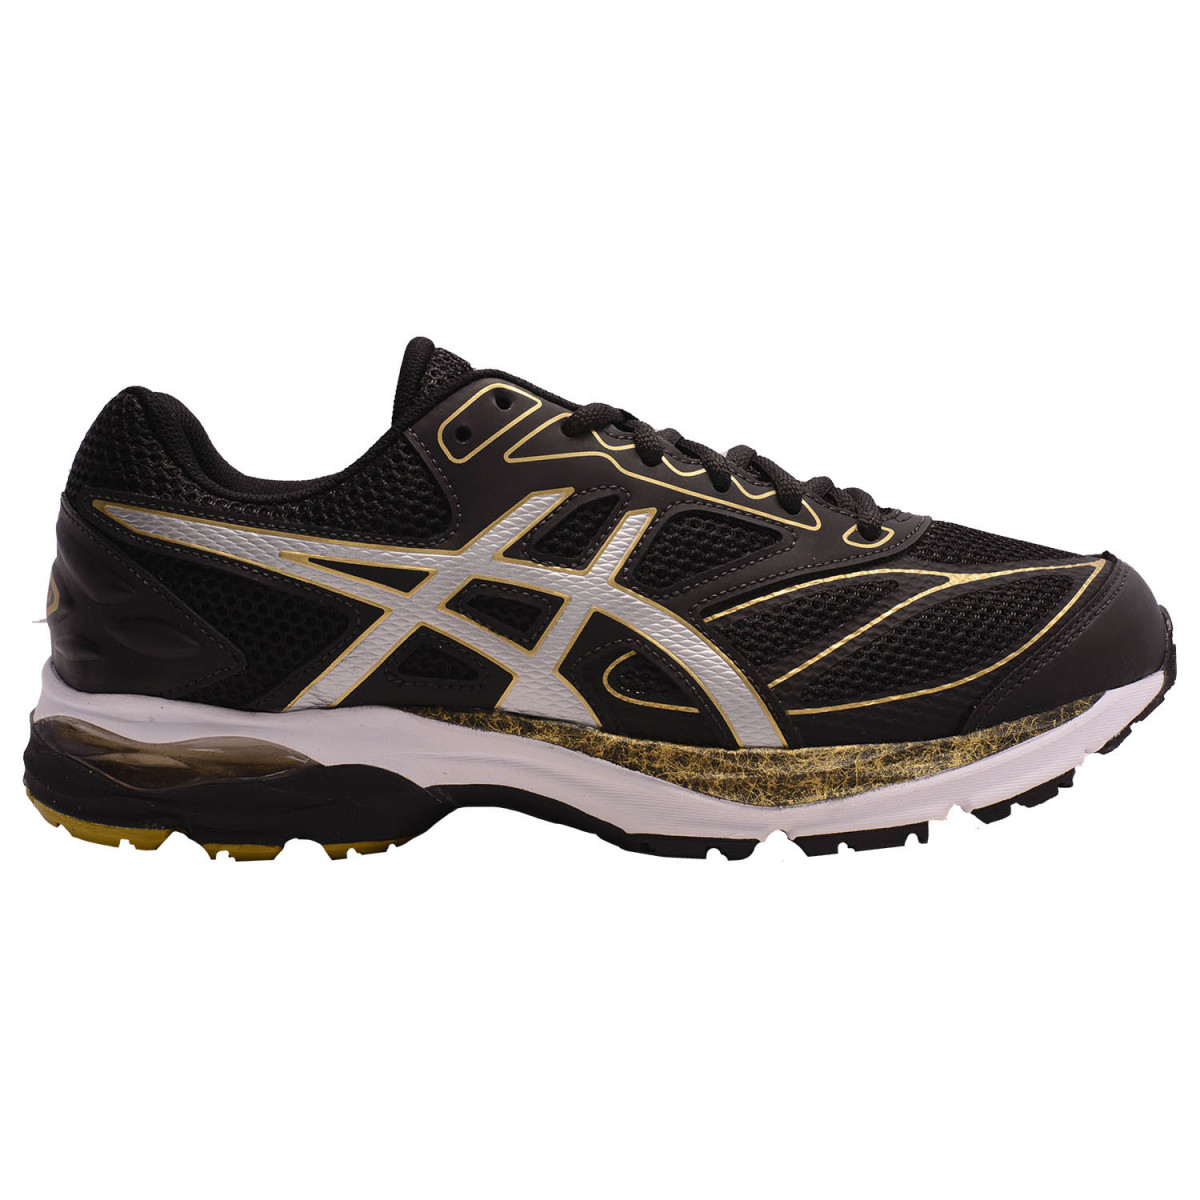 fdf3b6765a0f7 Zapatillas Asics Gel Pulse 8 A - Asics hasta 35% OFF - Rebajas